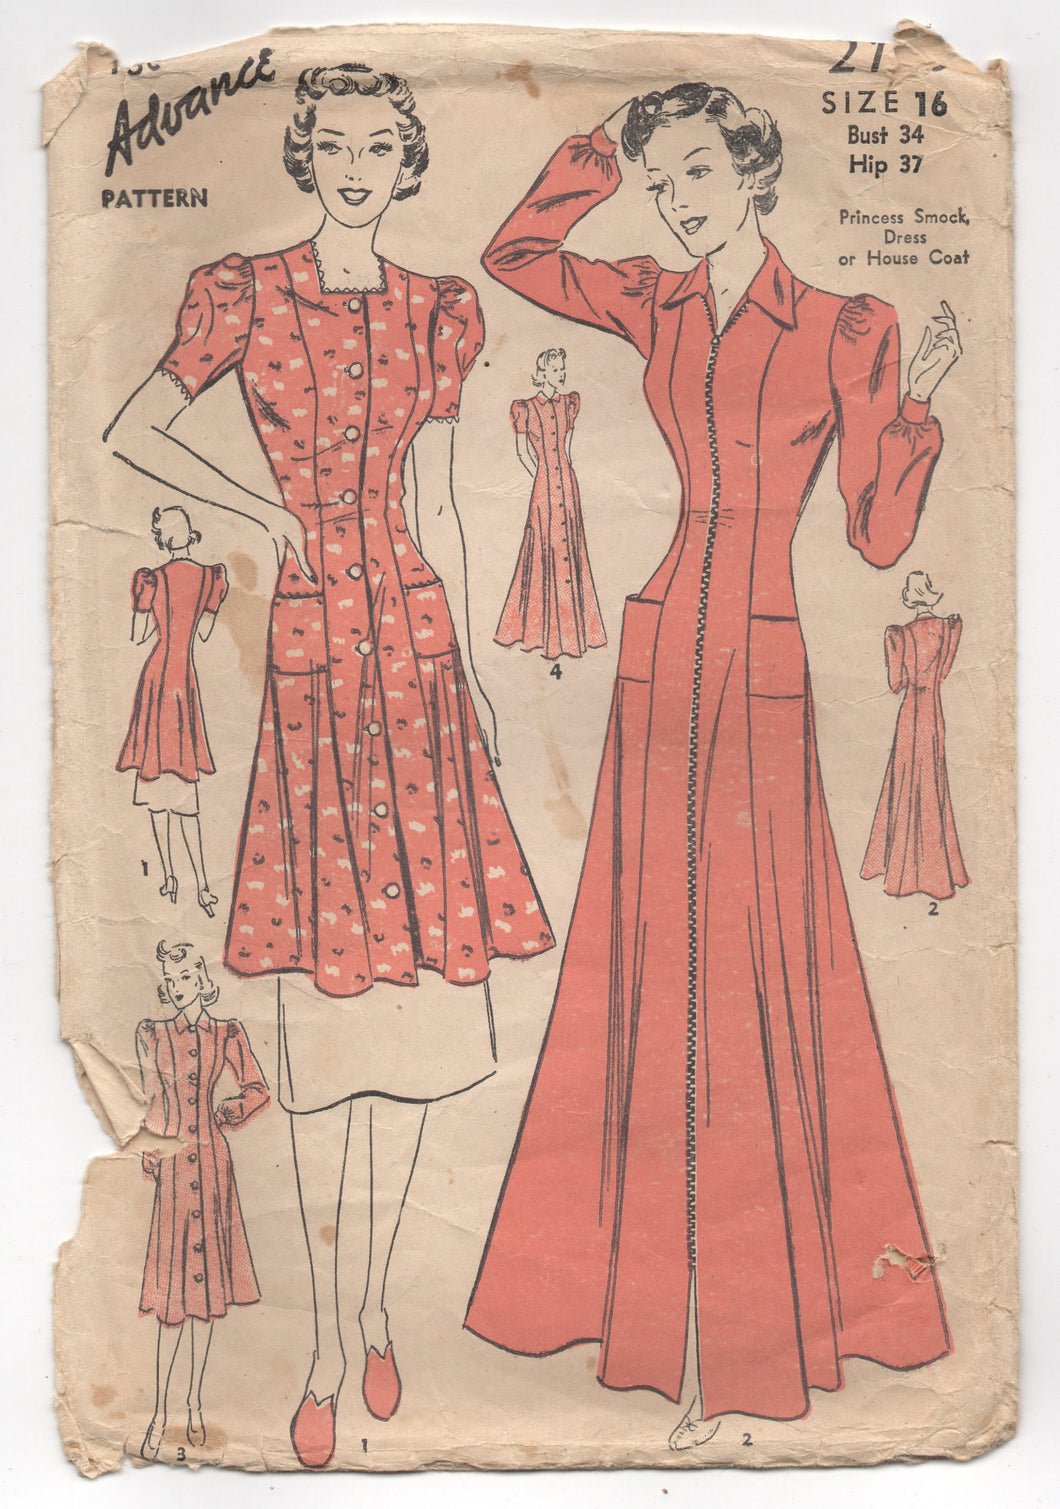 1940's Advance Princess cut One Piece Dress, Smock or House Coat Pattern - Bust 34